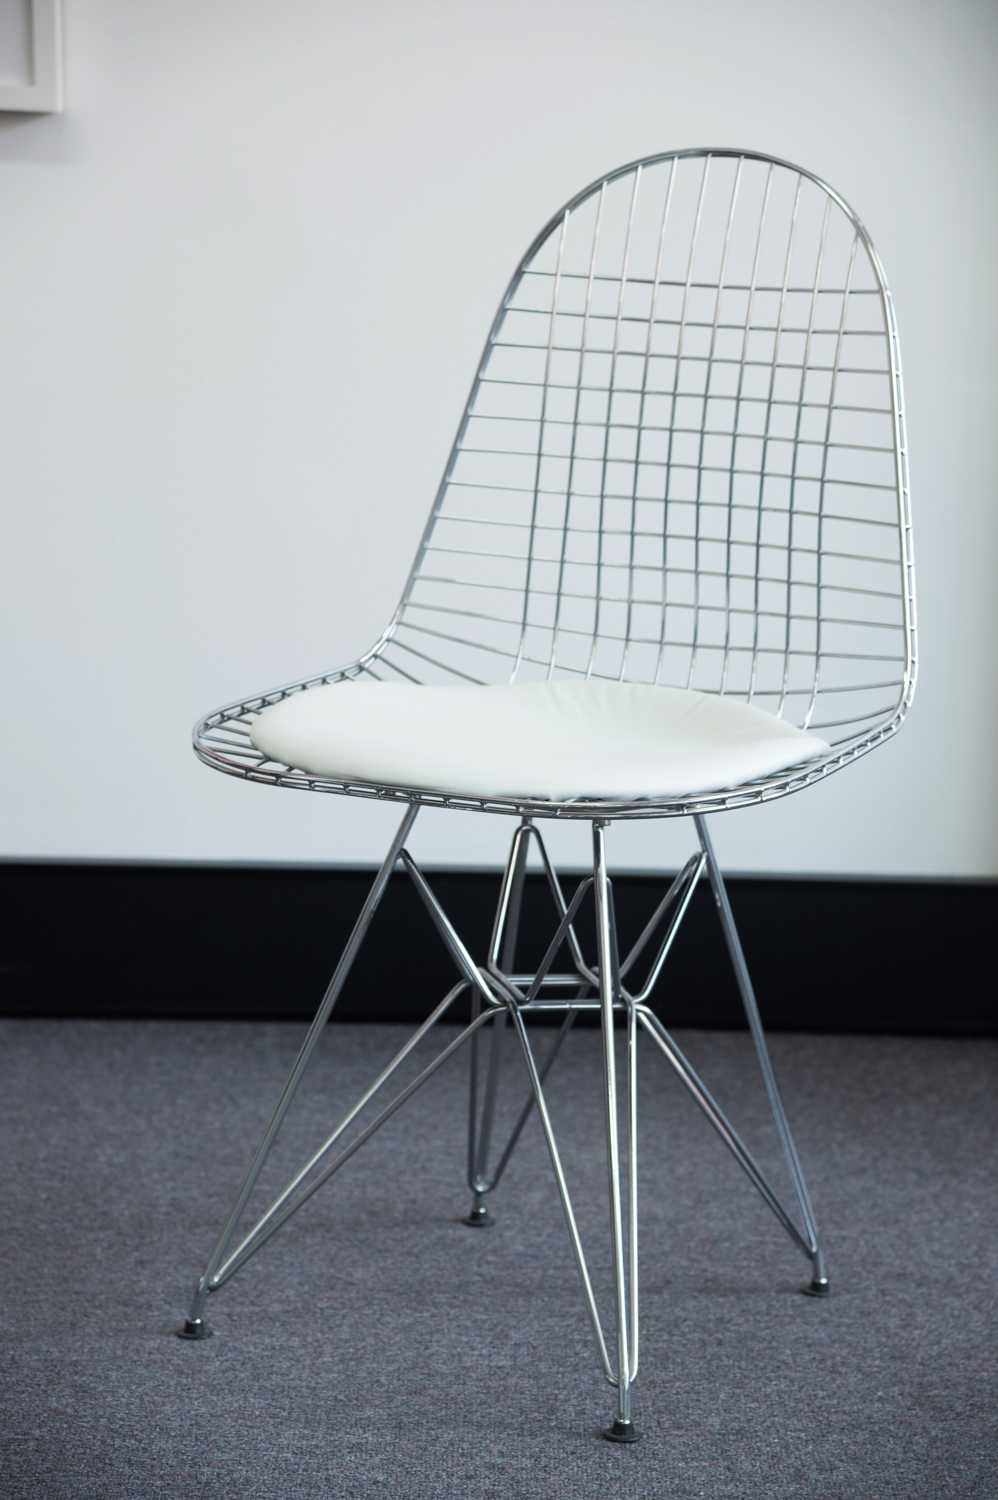 commercial-office-chair-detail-premiumstrata-surry-hills-sydney